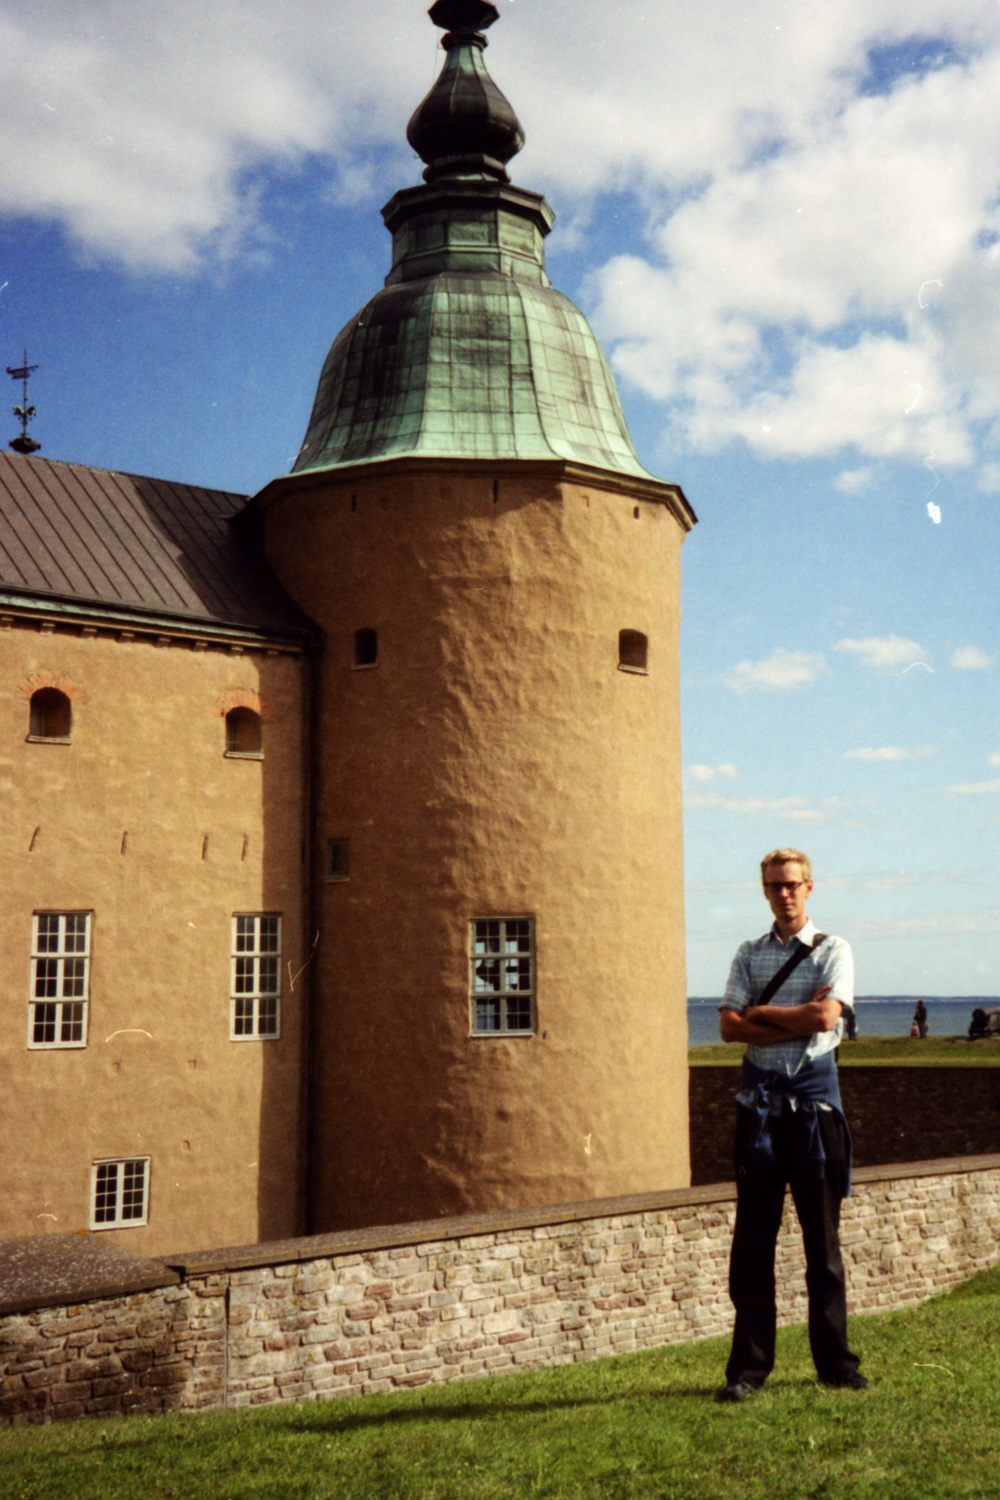 The castle of Kalmar. Note the blue sky in the background, an unusual sight on this tour.